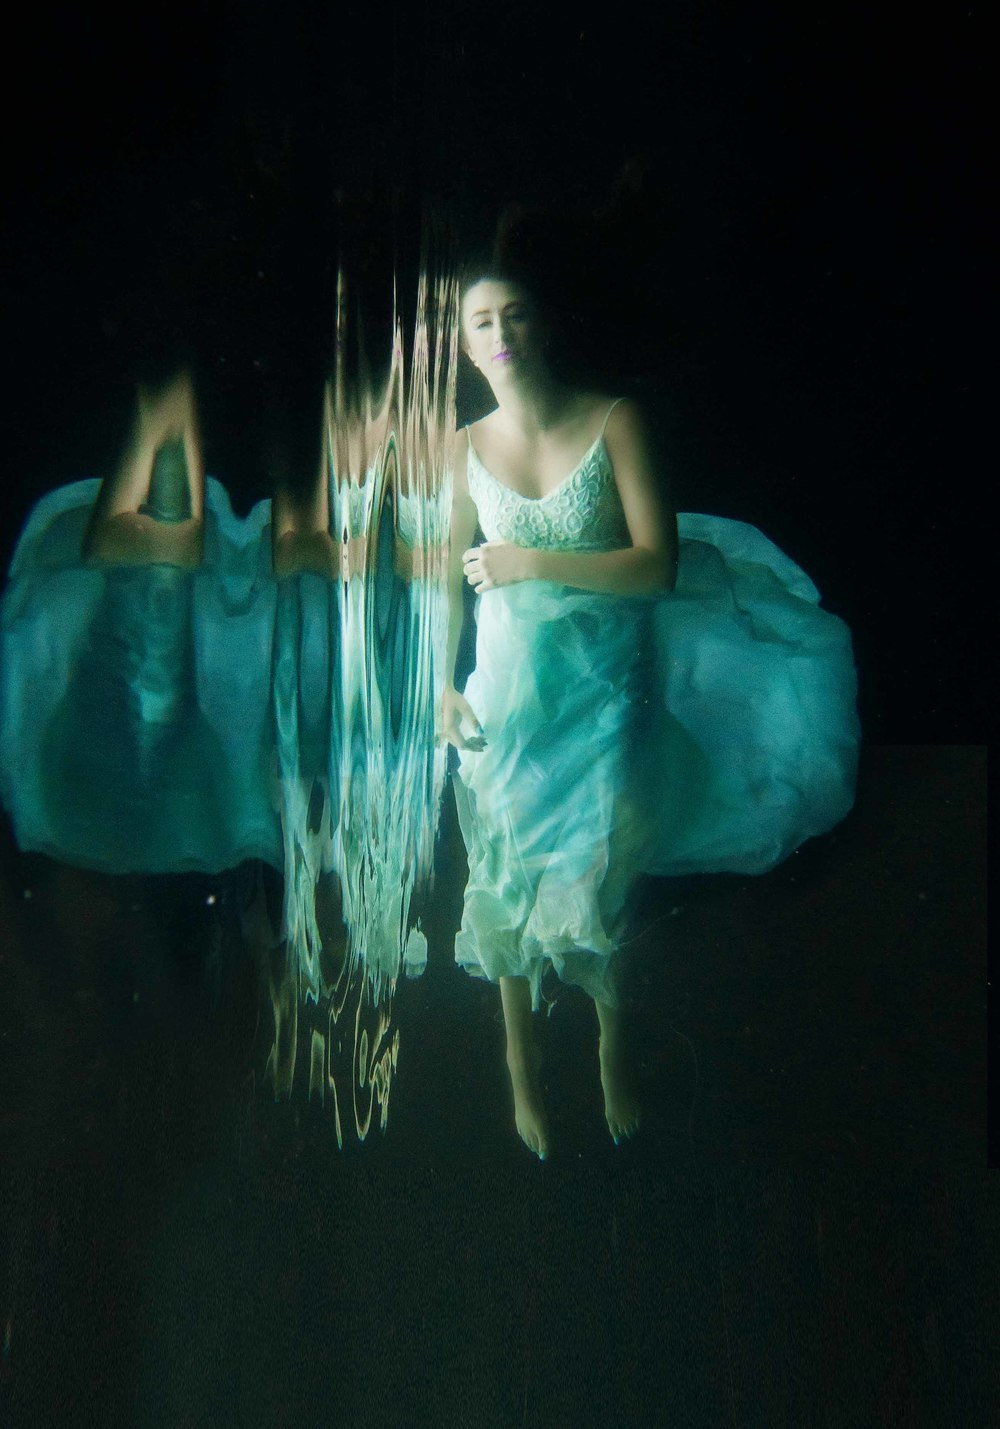 lauren_MERMAIDSESSIONS_BrienneMichelle_Photography.JPG